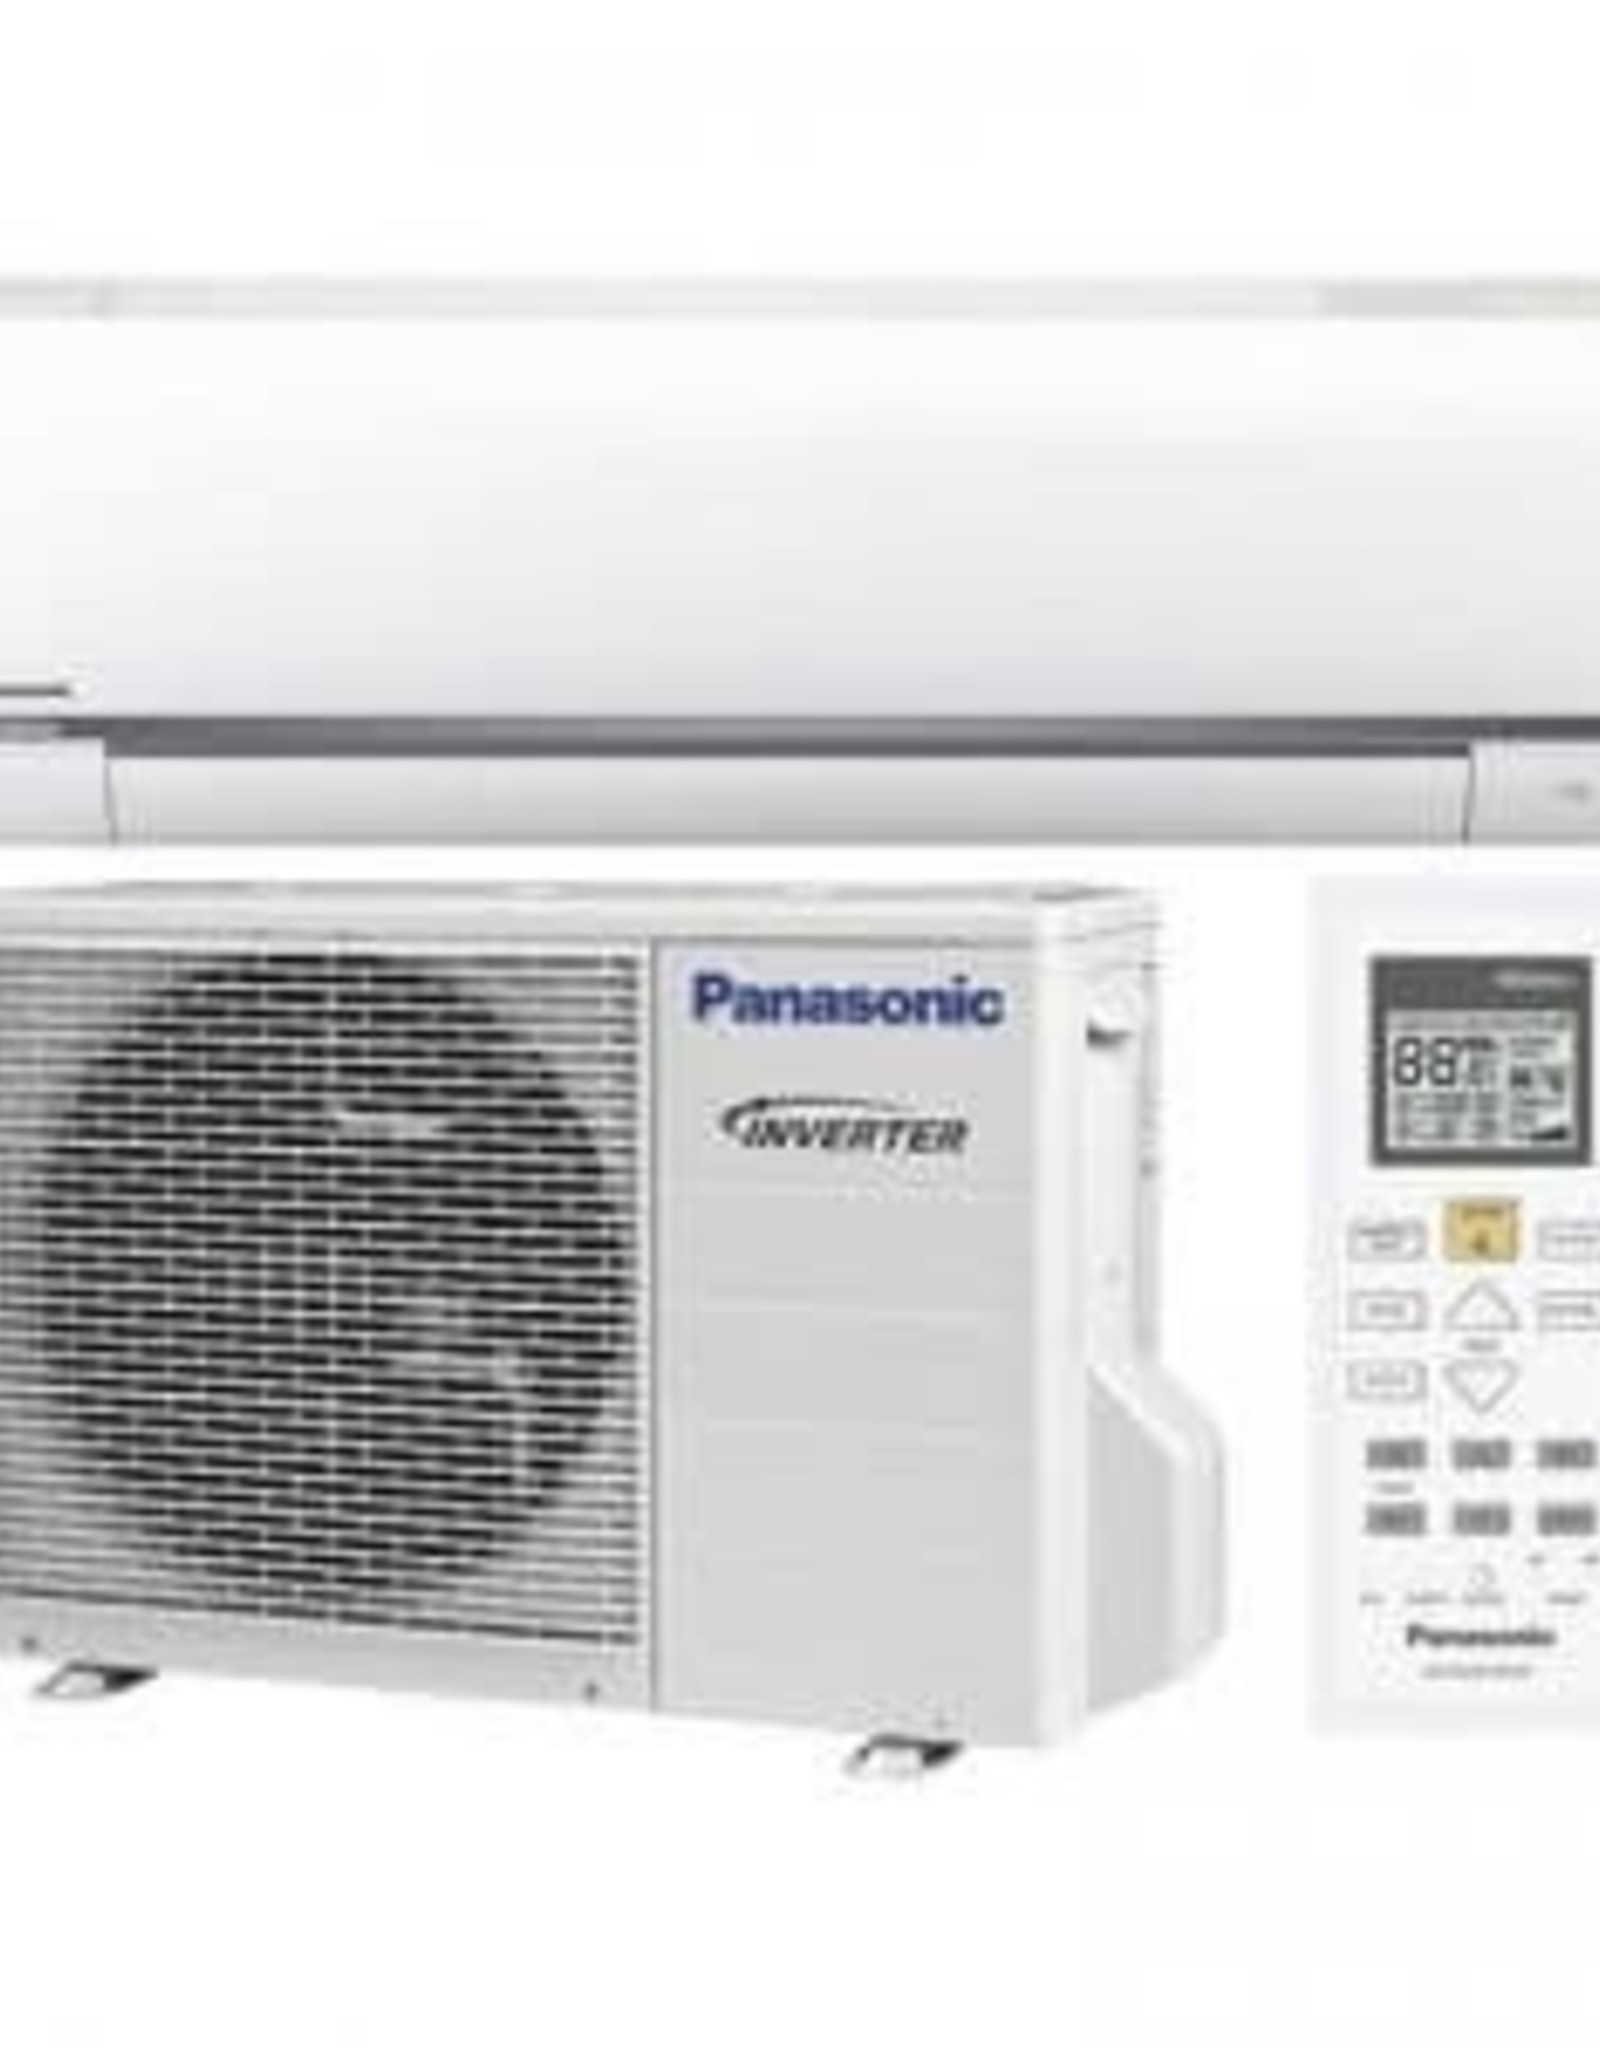 PANASONIC INVERTER KIT-FZ25-UKE 2.5KW MONO SPLIT WAND AIRCO